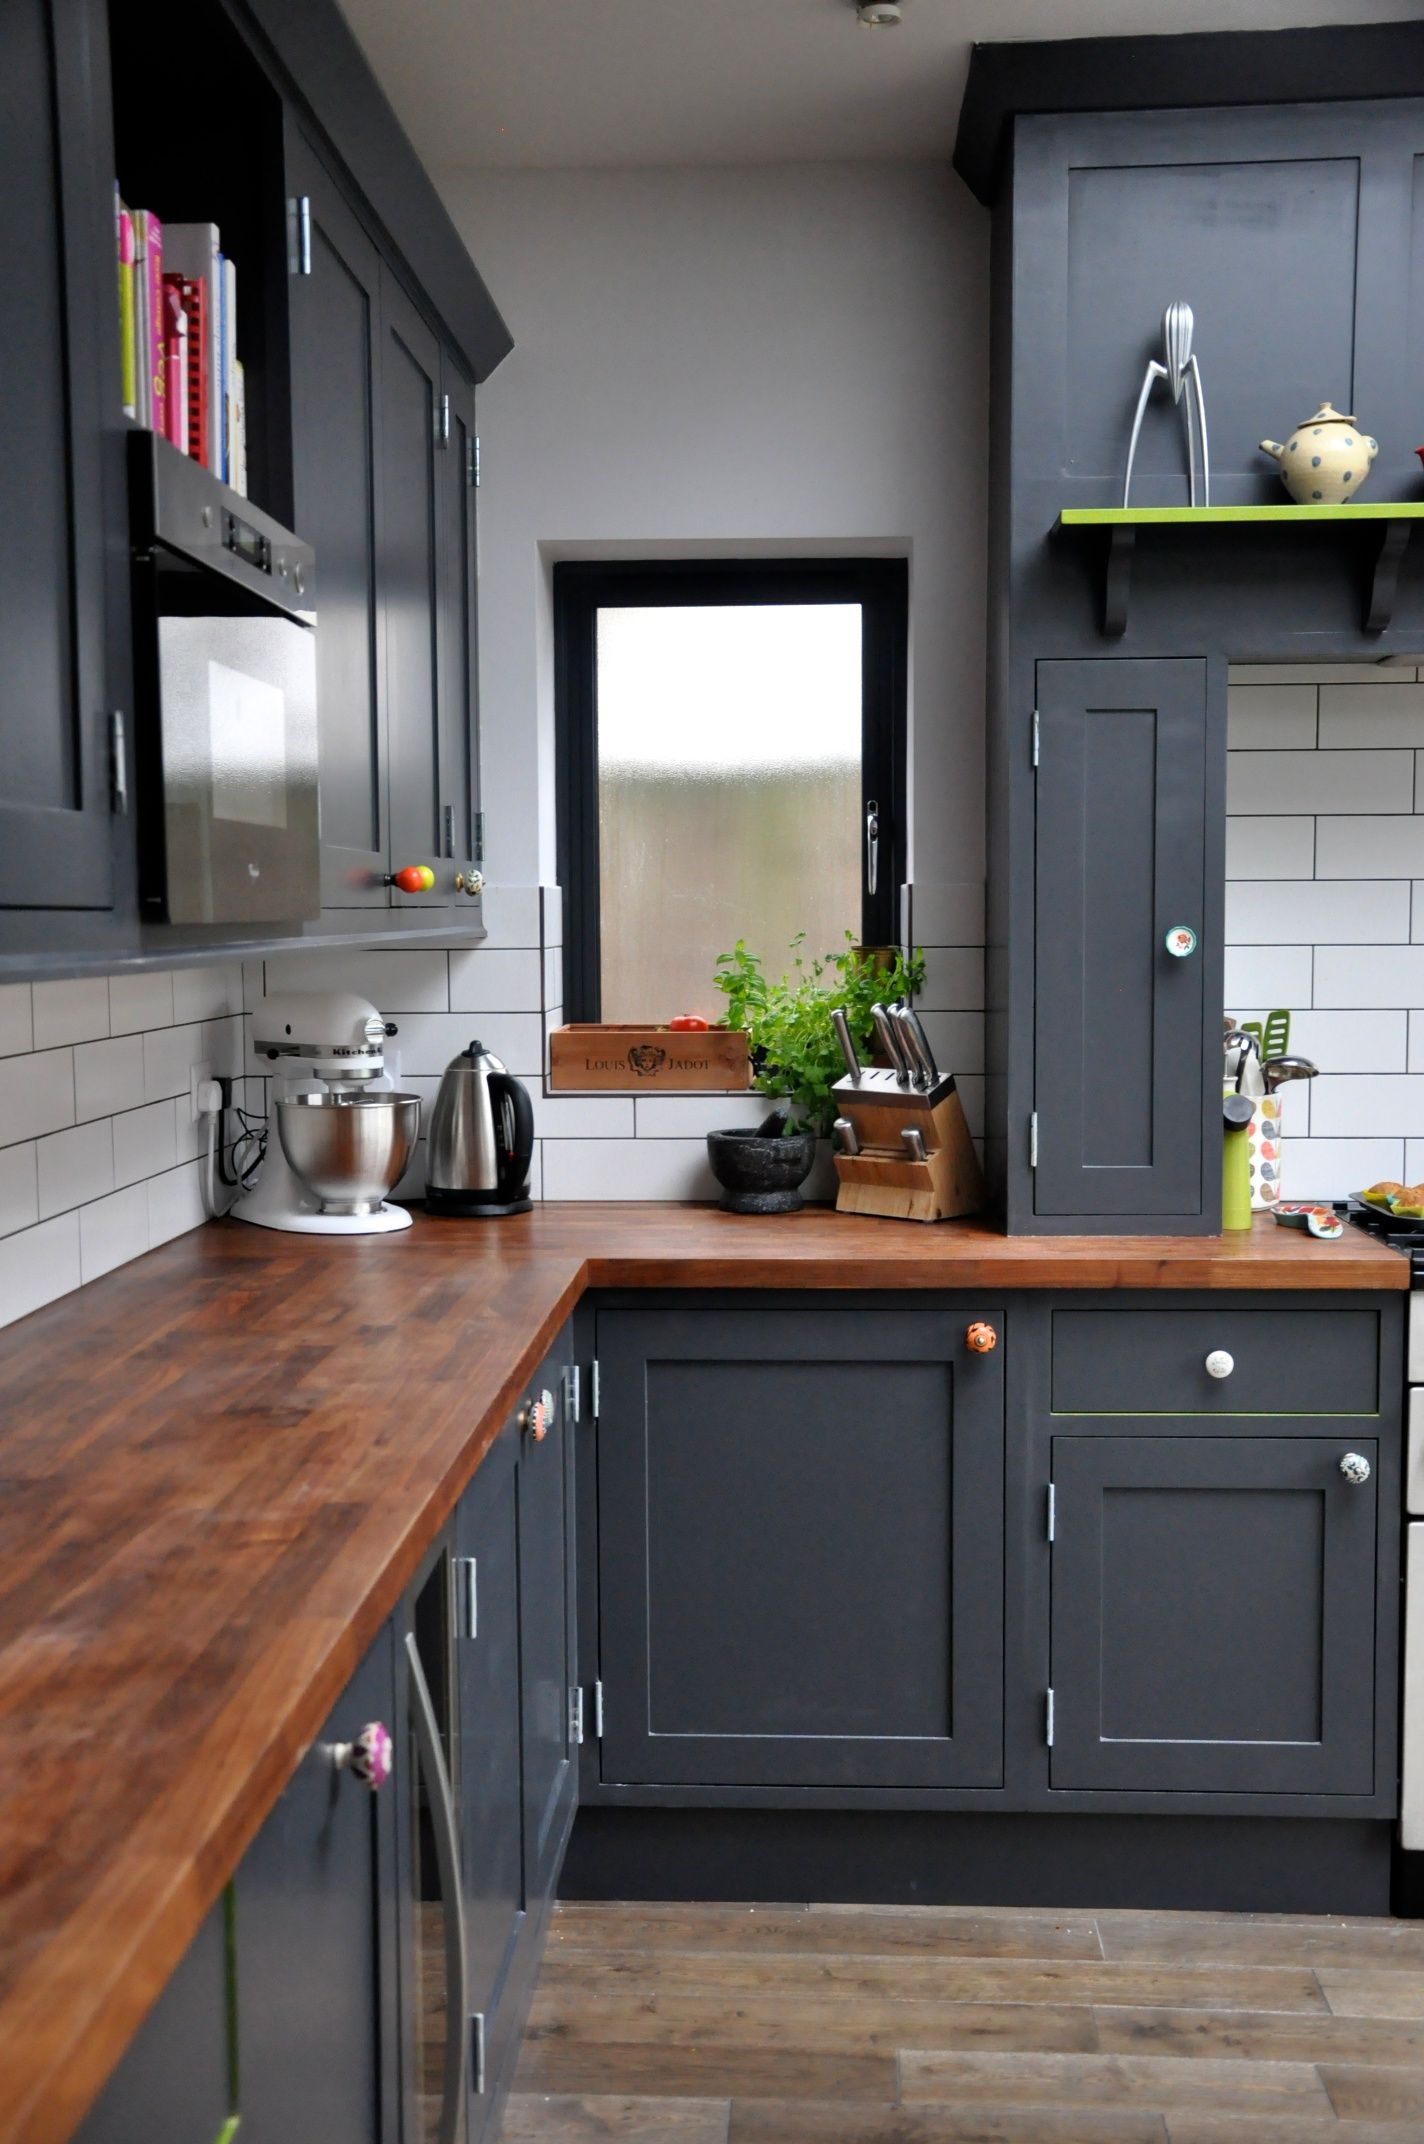 Wooden Counters Can Not Only Look Very Chic But Will Also Save You - Grey kitchen cabinets with wood countertops